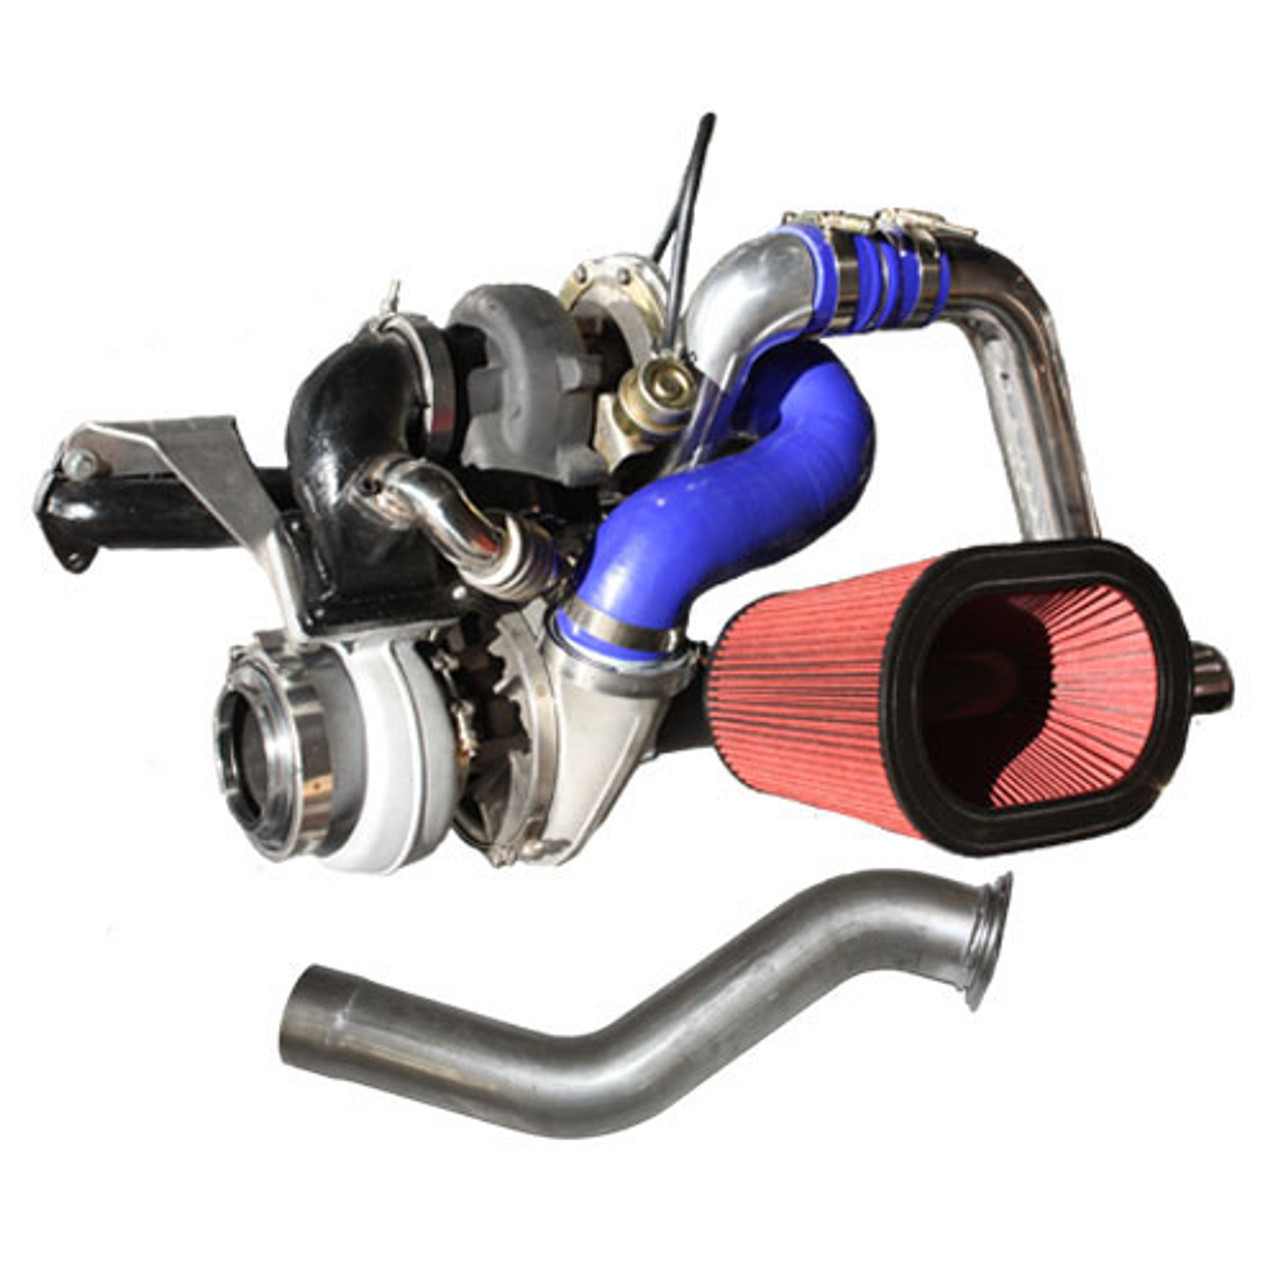 DPS S475 Twin (Compound) Turbo Kit S400 / S475 Turbo For Dodge Cummins  1994-98 5 9L Gen2 12V